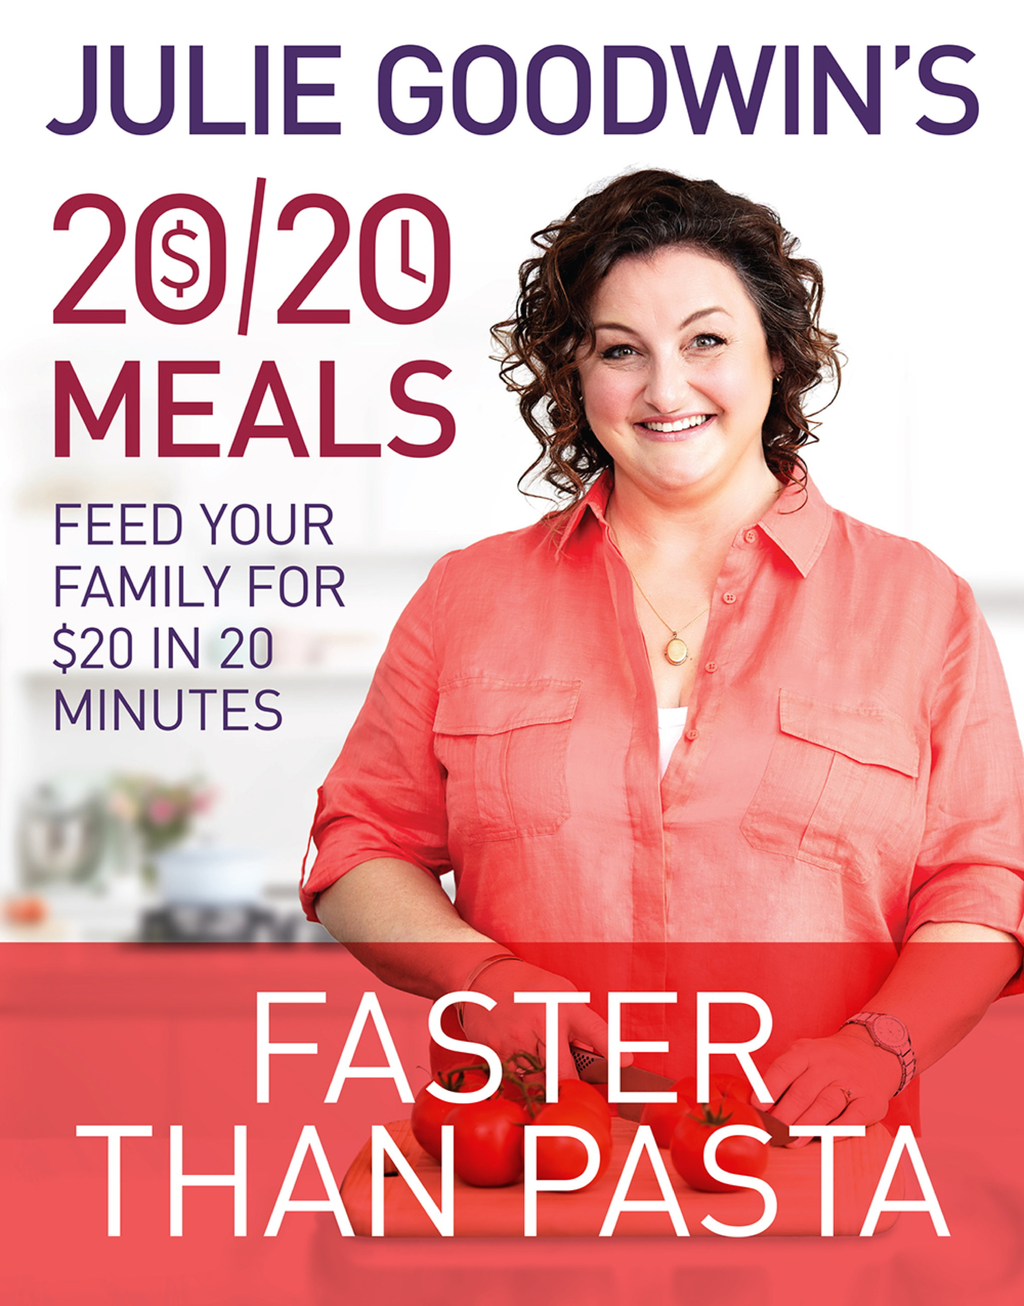 Julie Goodwin's 20/20 Meals: Faster than Pasta